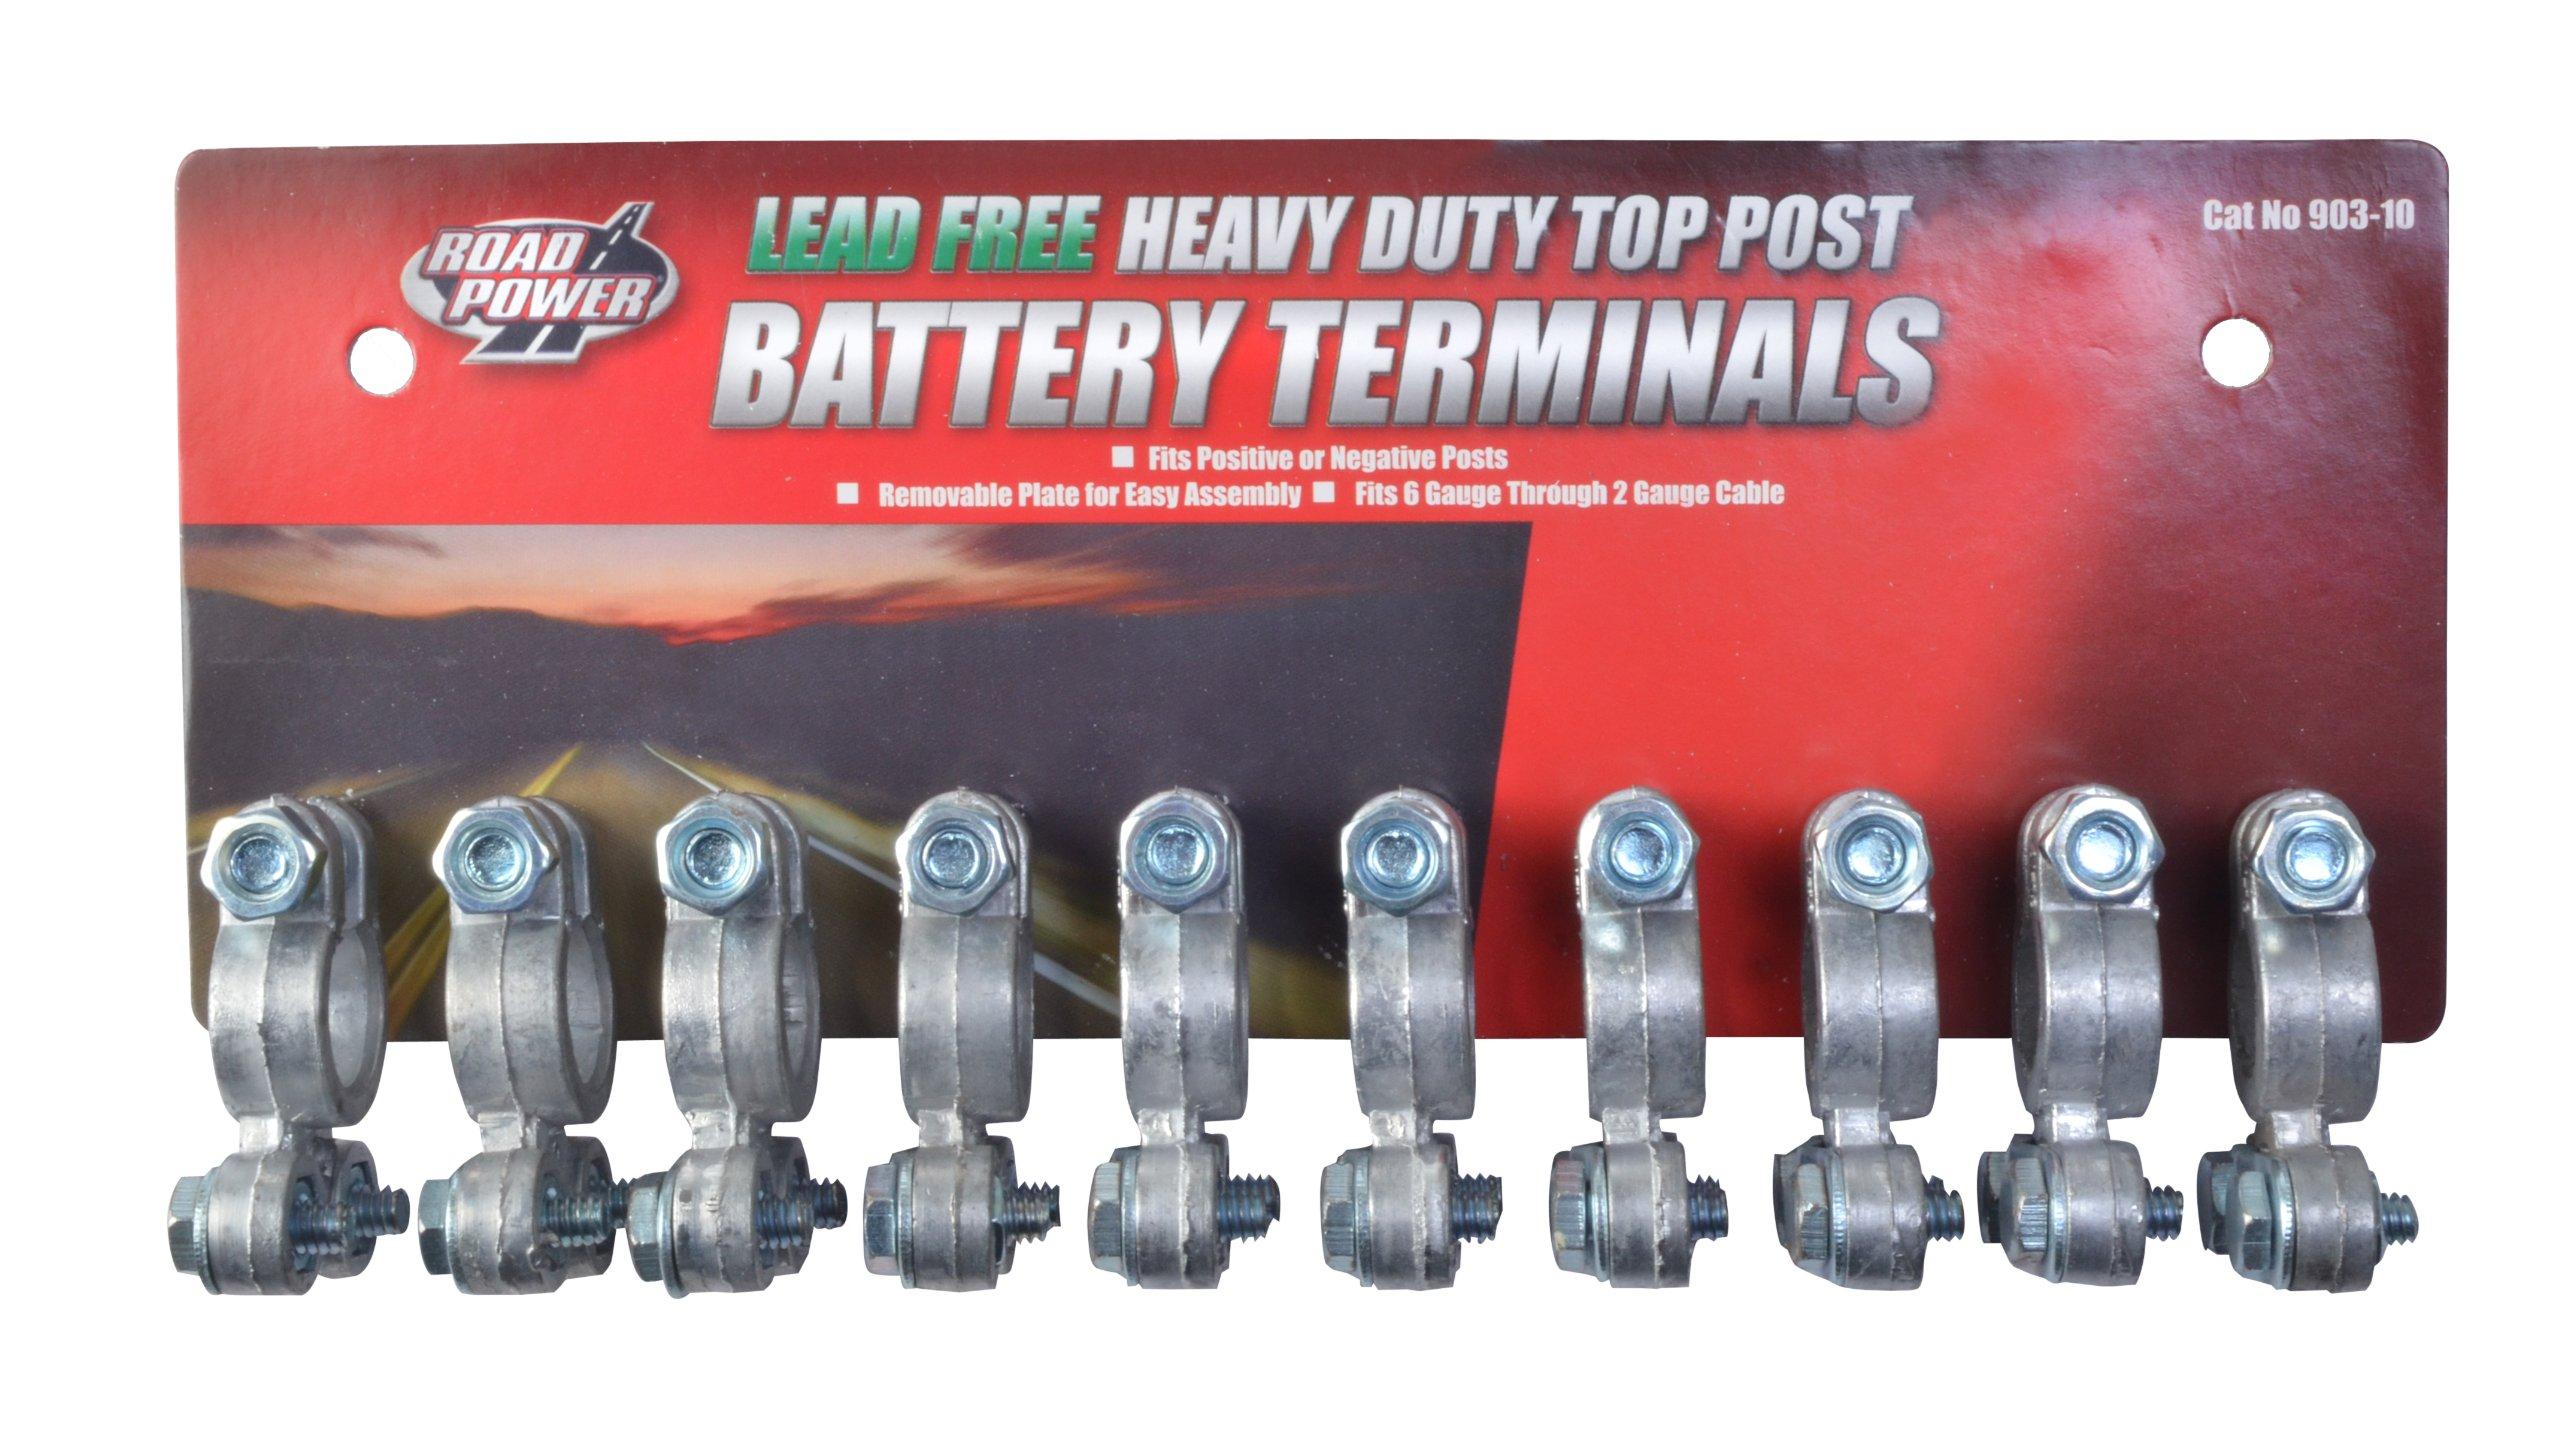 Road Power 903-10 Top Post Battery Terminal, 10-Pack, Chrome, 6 and 12-Volt